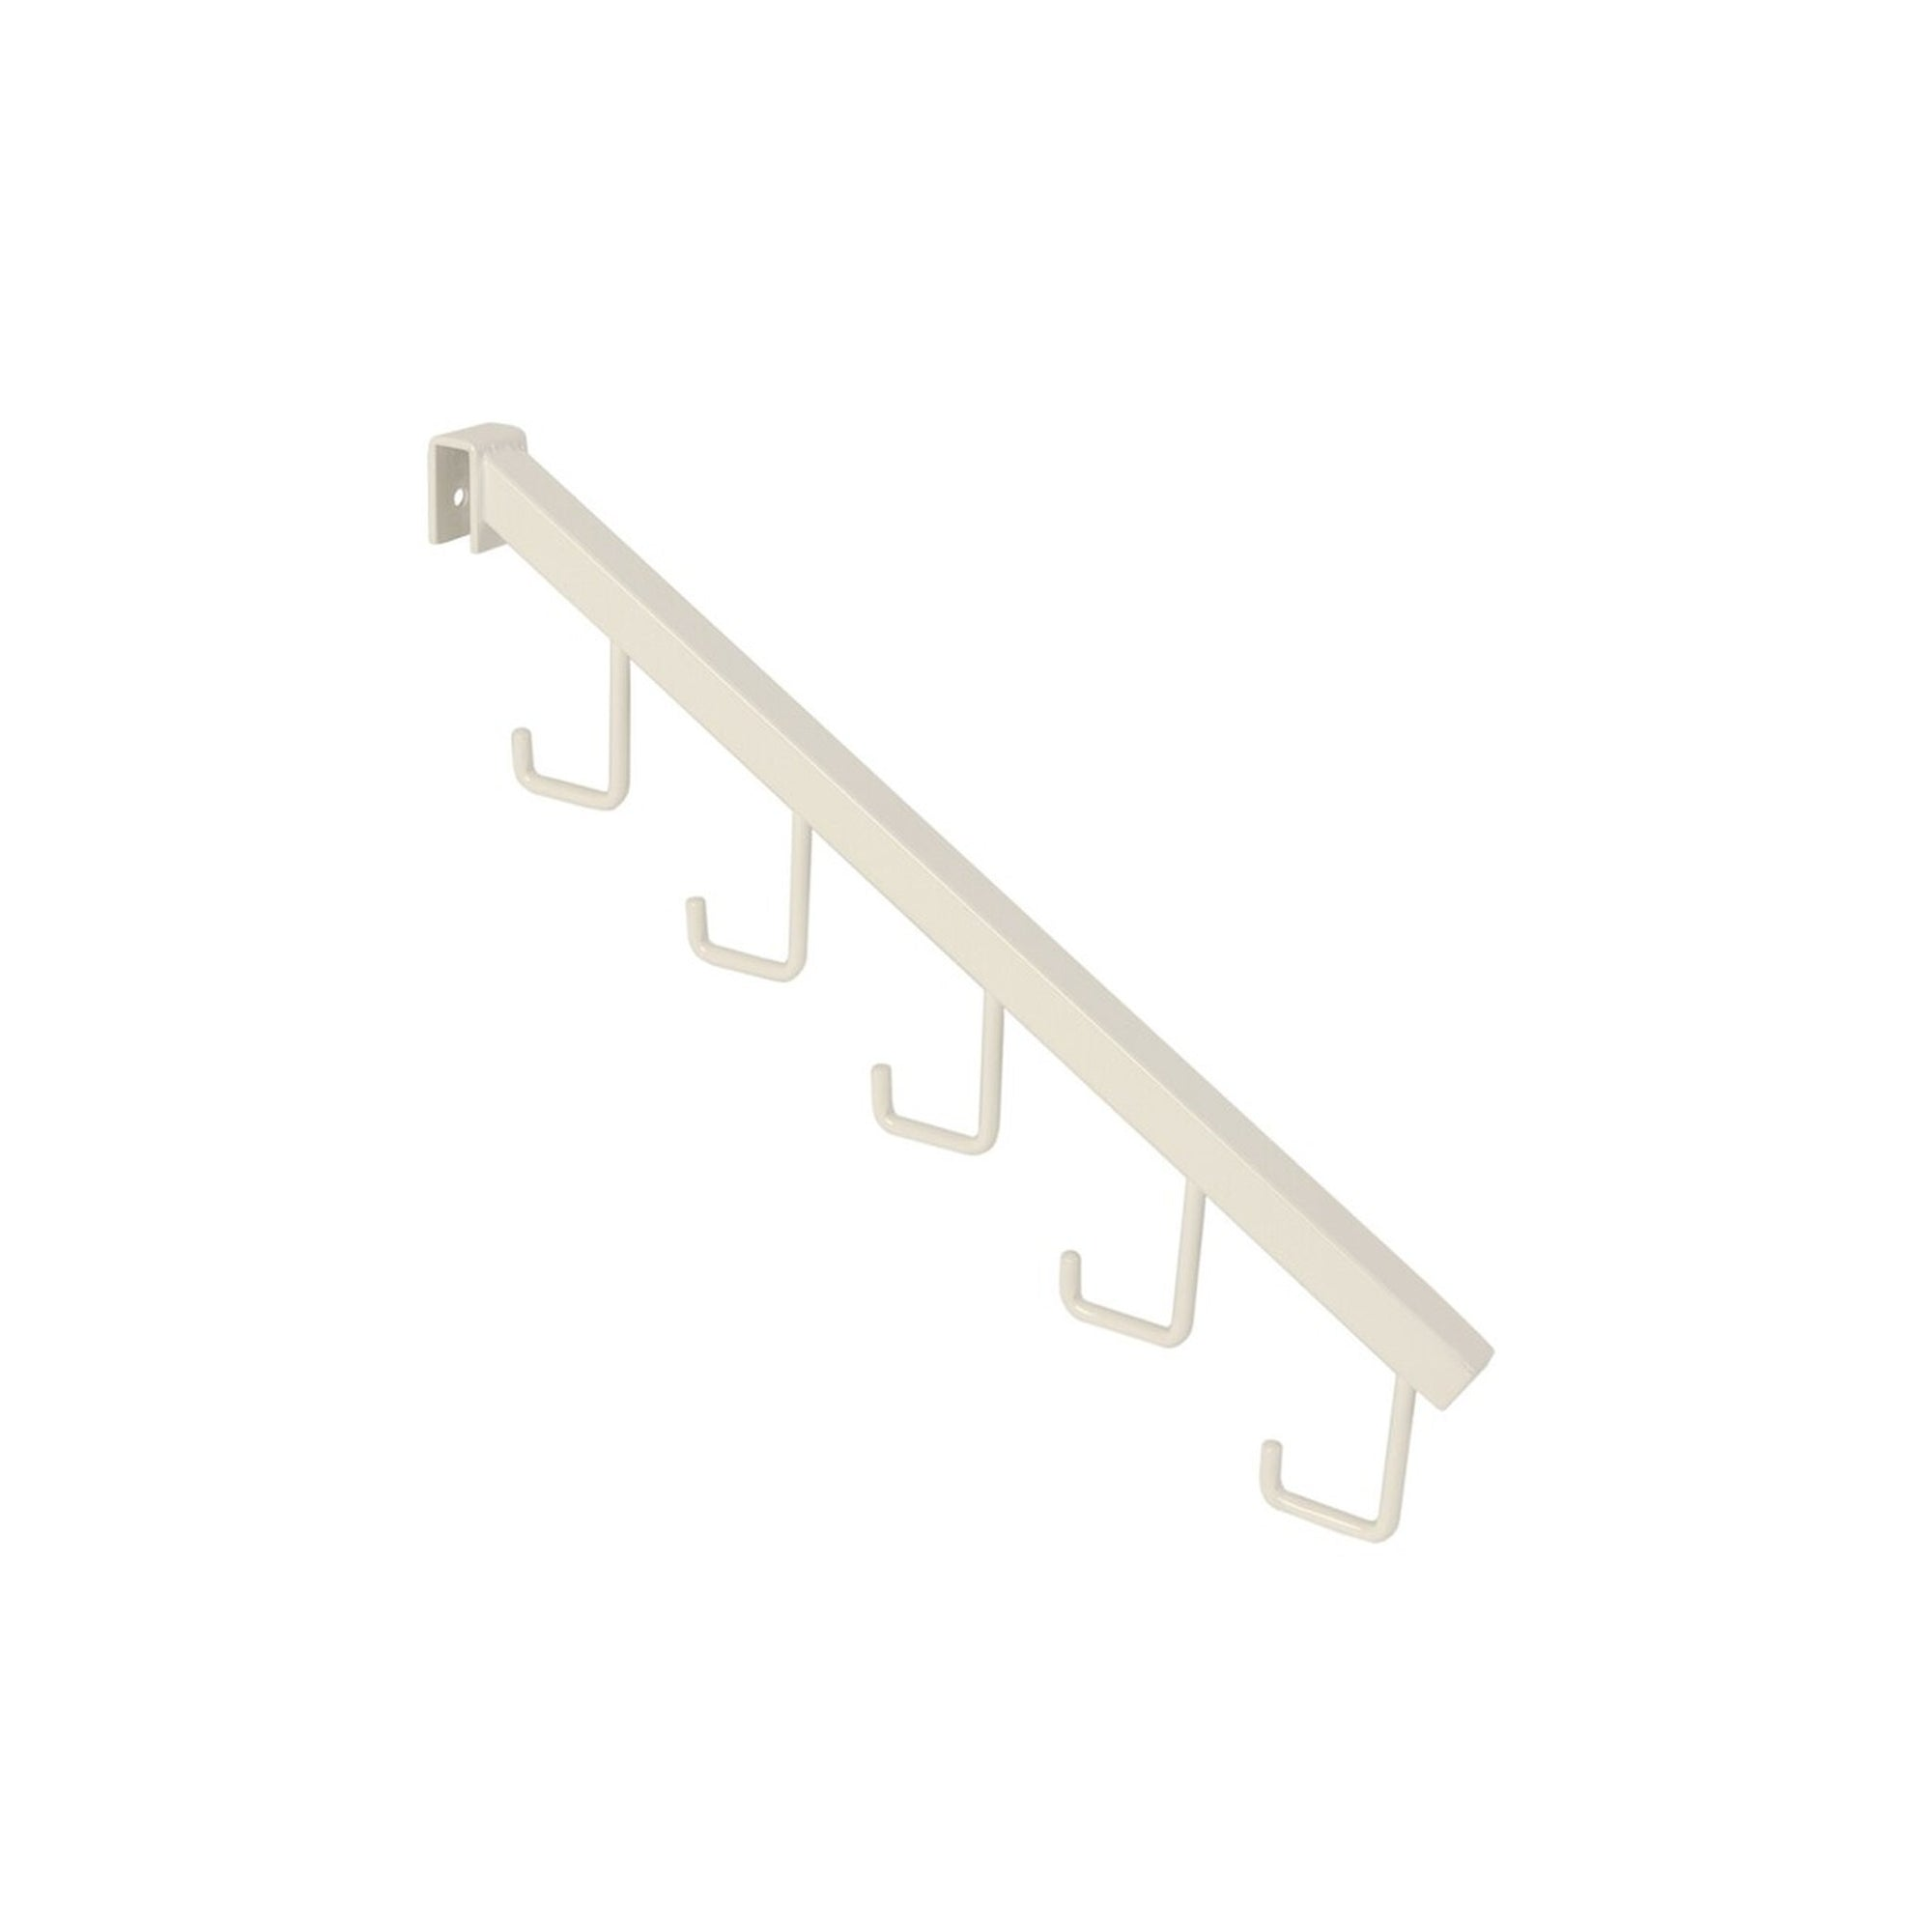 MAXe Backrail Angled Arm with 5 Hooks - 405mm D x 18mm x 18 mm section (E4860)